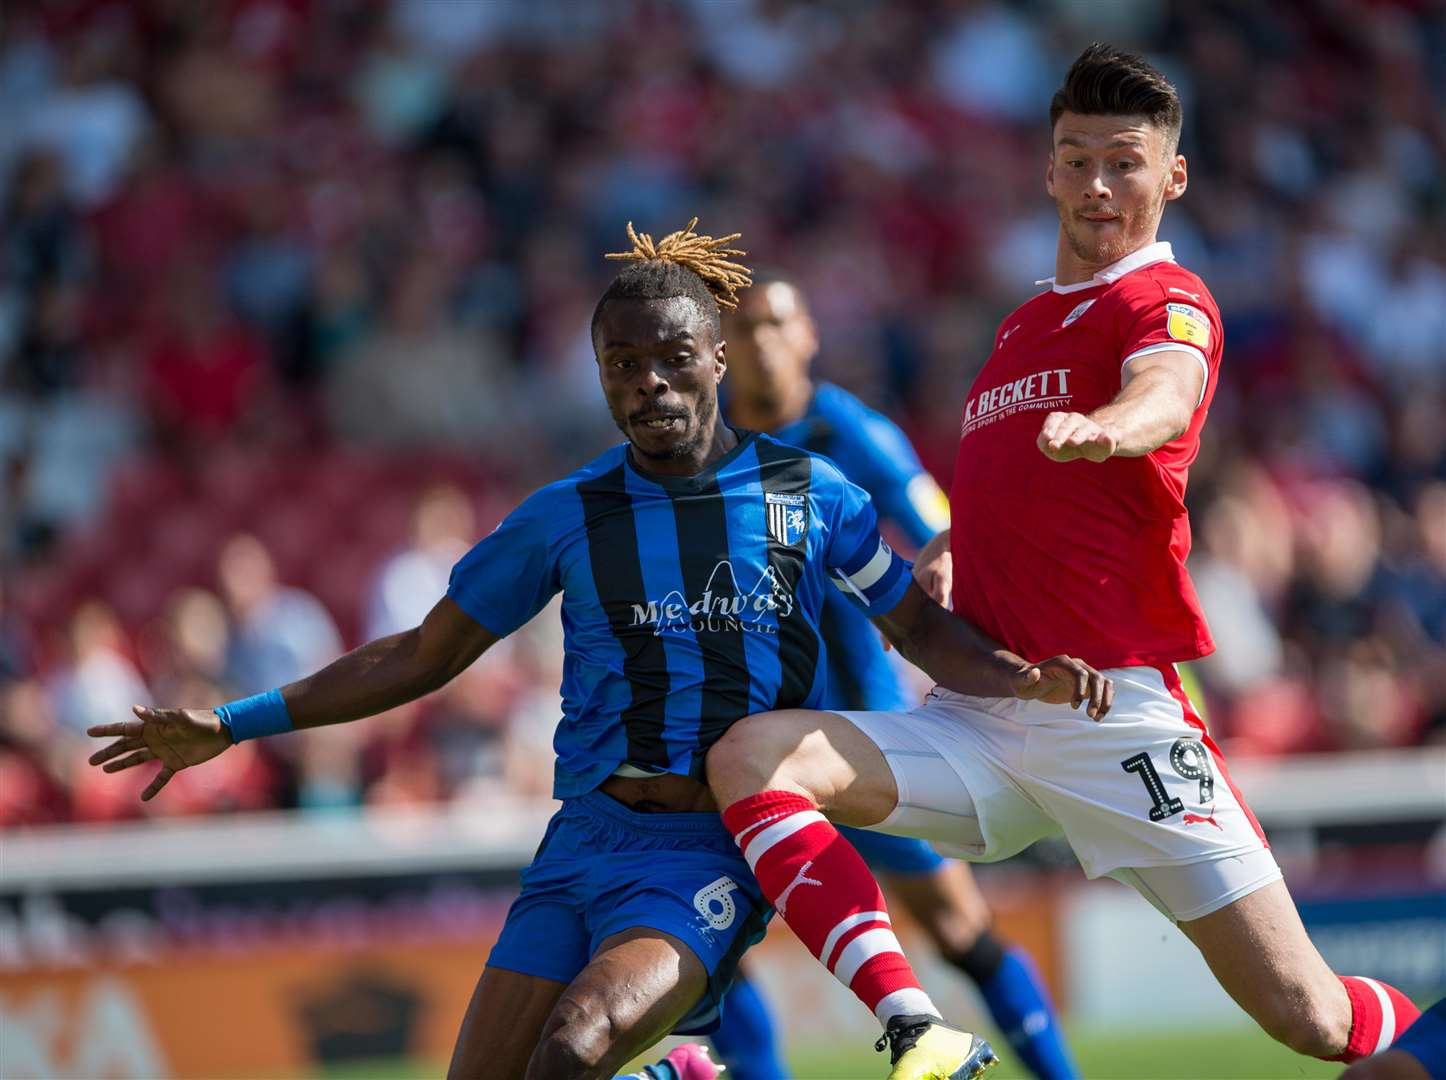 Gabriel Zakuani in action for Gillingham against Barnsley Picture: Ady Kerry